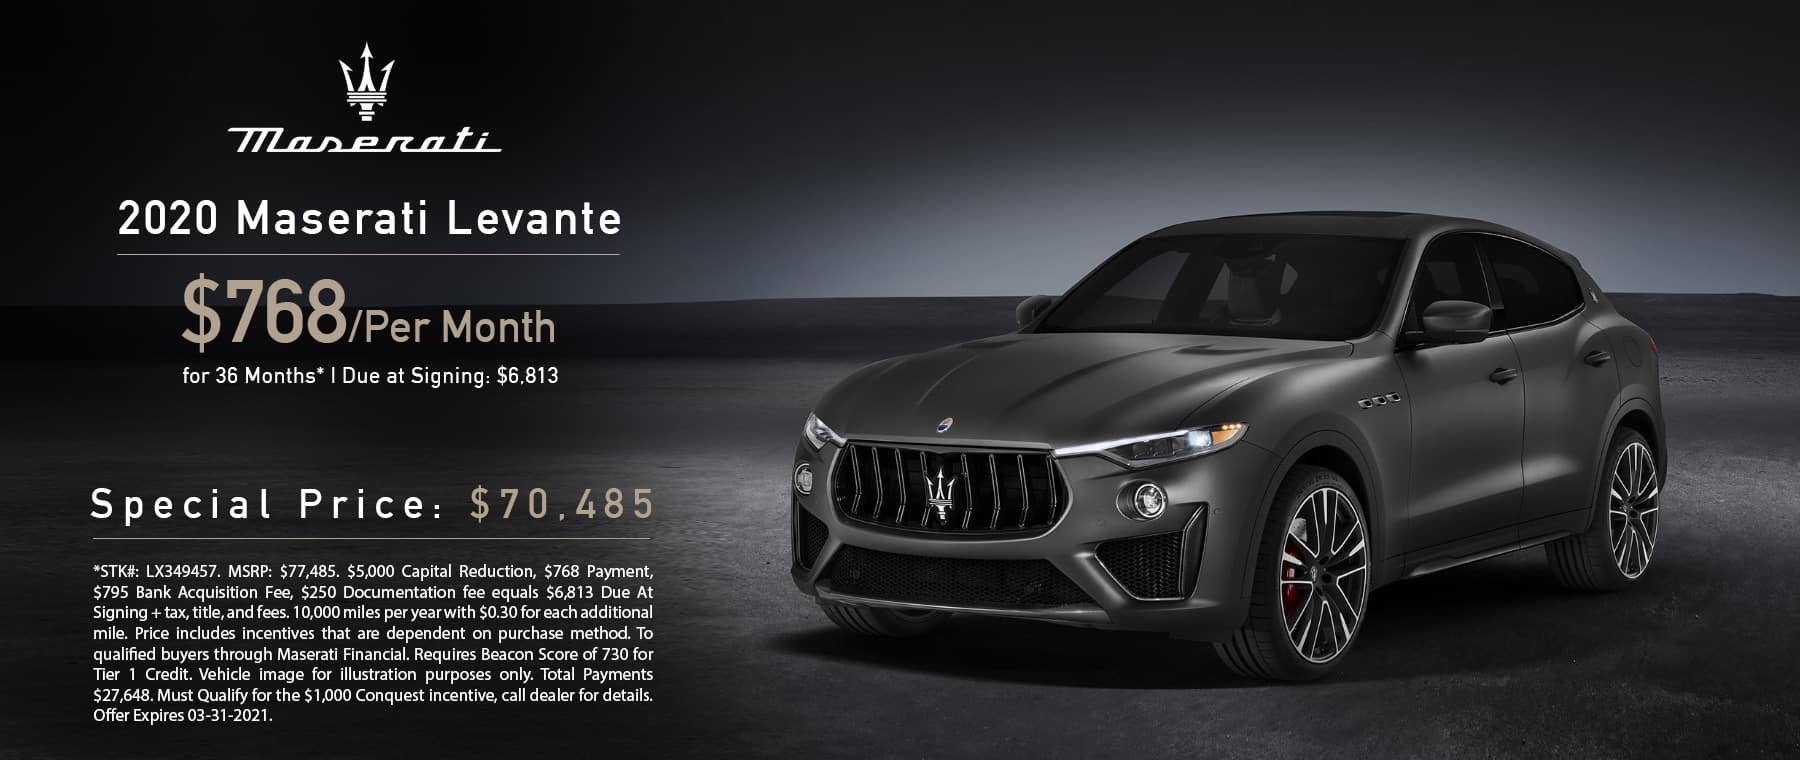 Maserati_2020_Levante_Slide_March2021_1